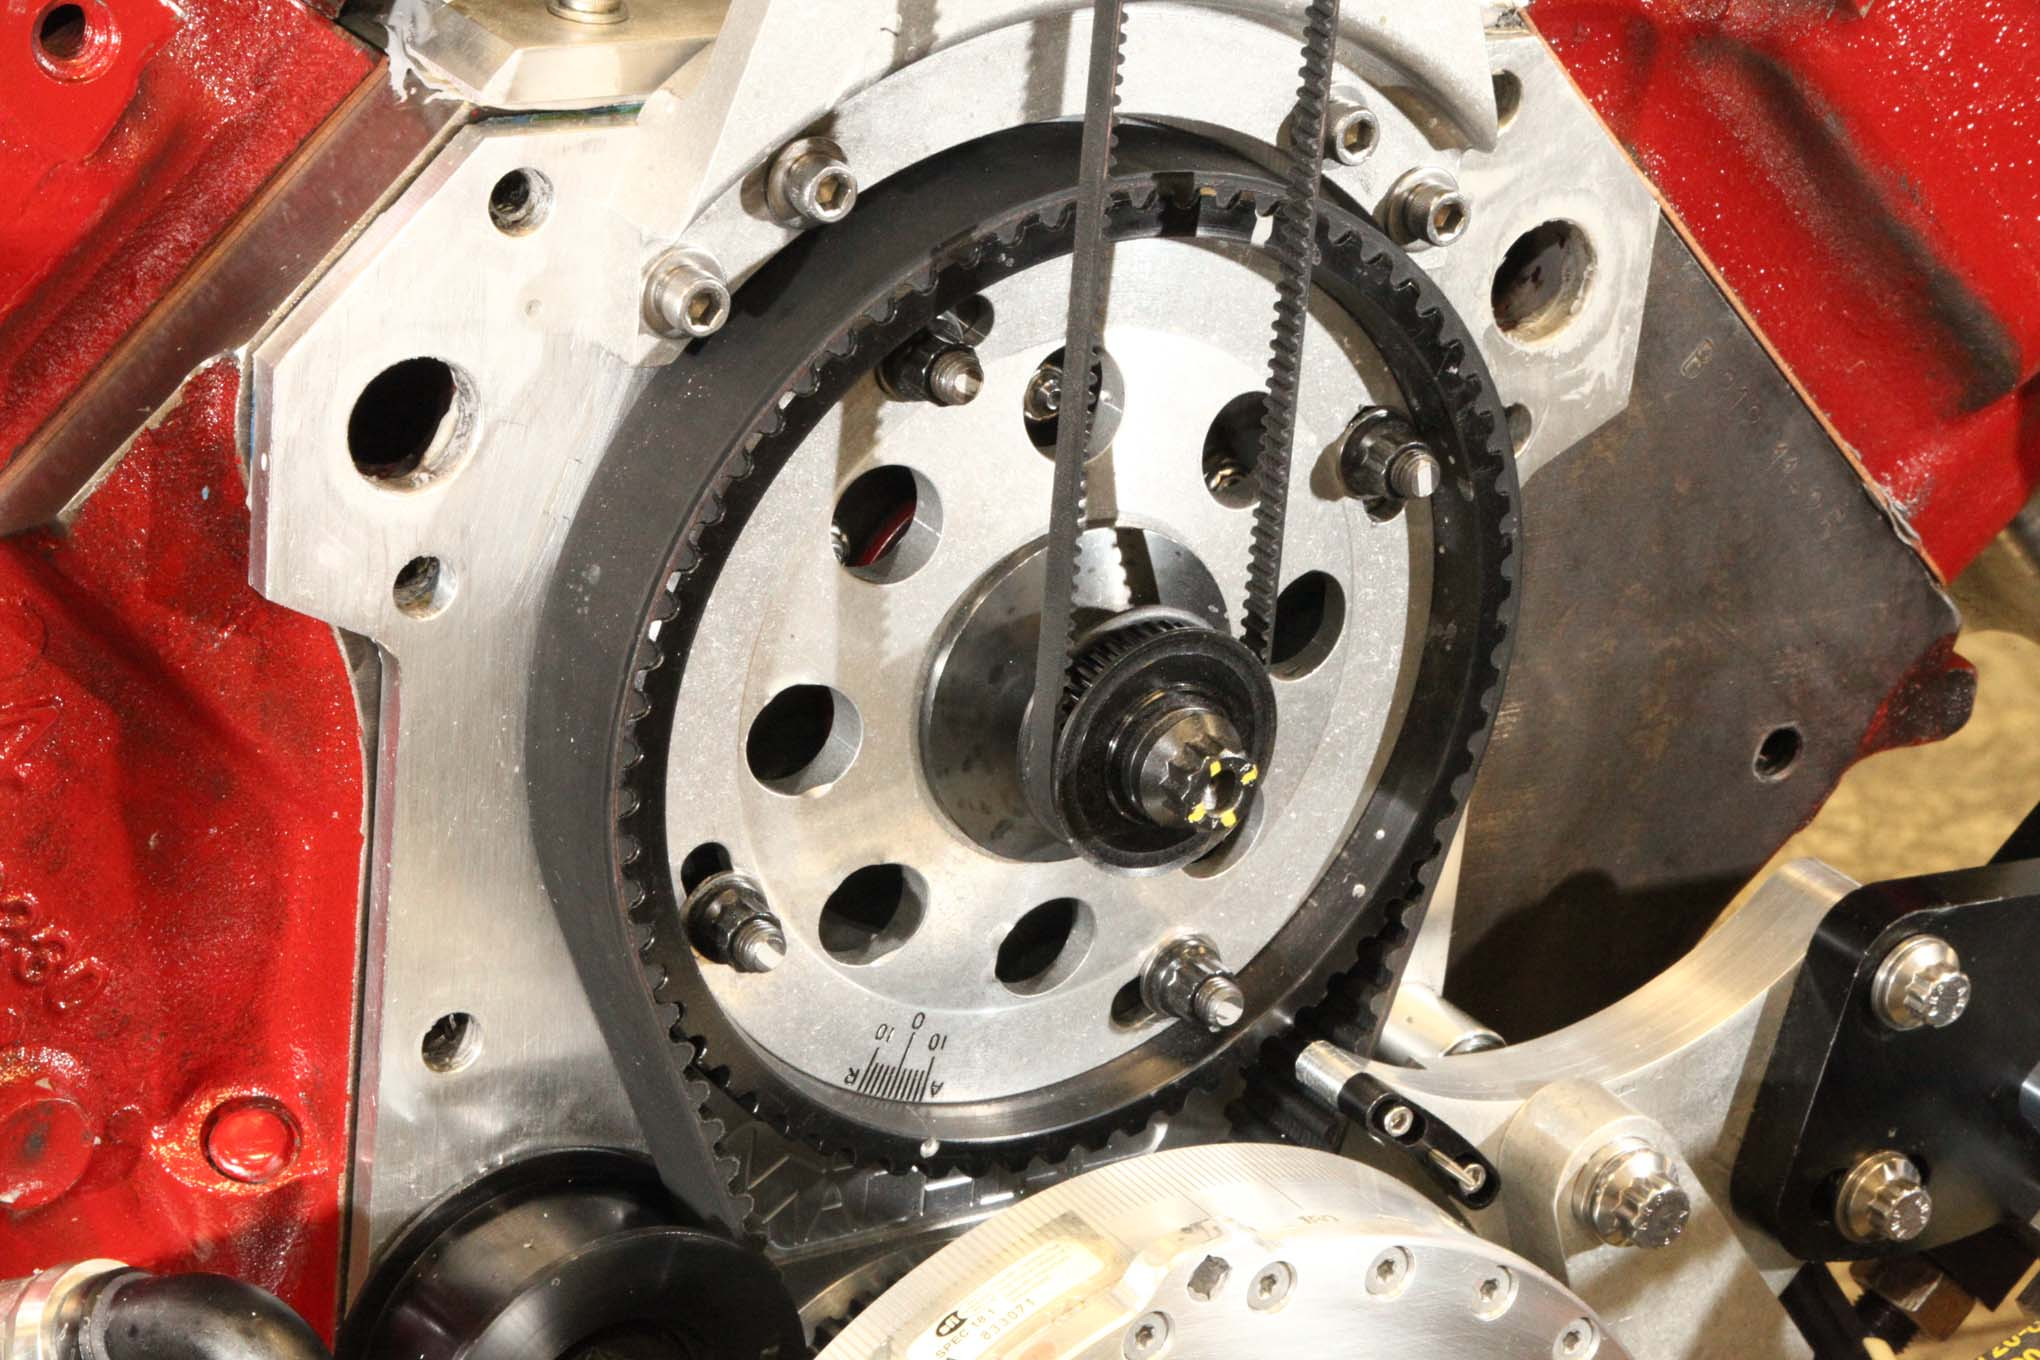 The belt-driven cam allows fast, accurate cam phasing adjustments while sapping less energy than any chain or gear drive. The tiny Gilmer belt is part of the totally reconfigured Pro Stock-spec ignition drive system.